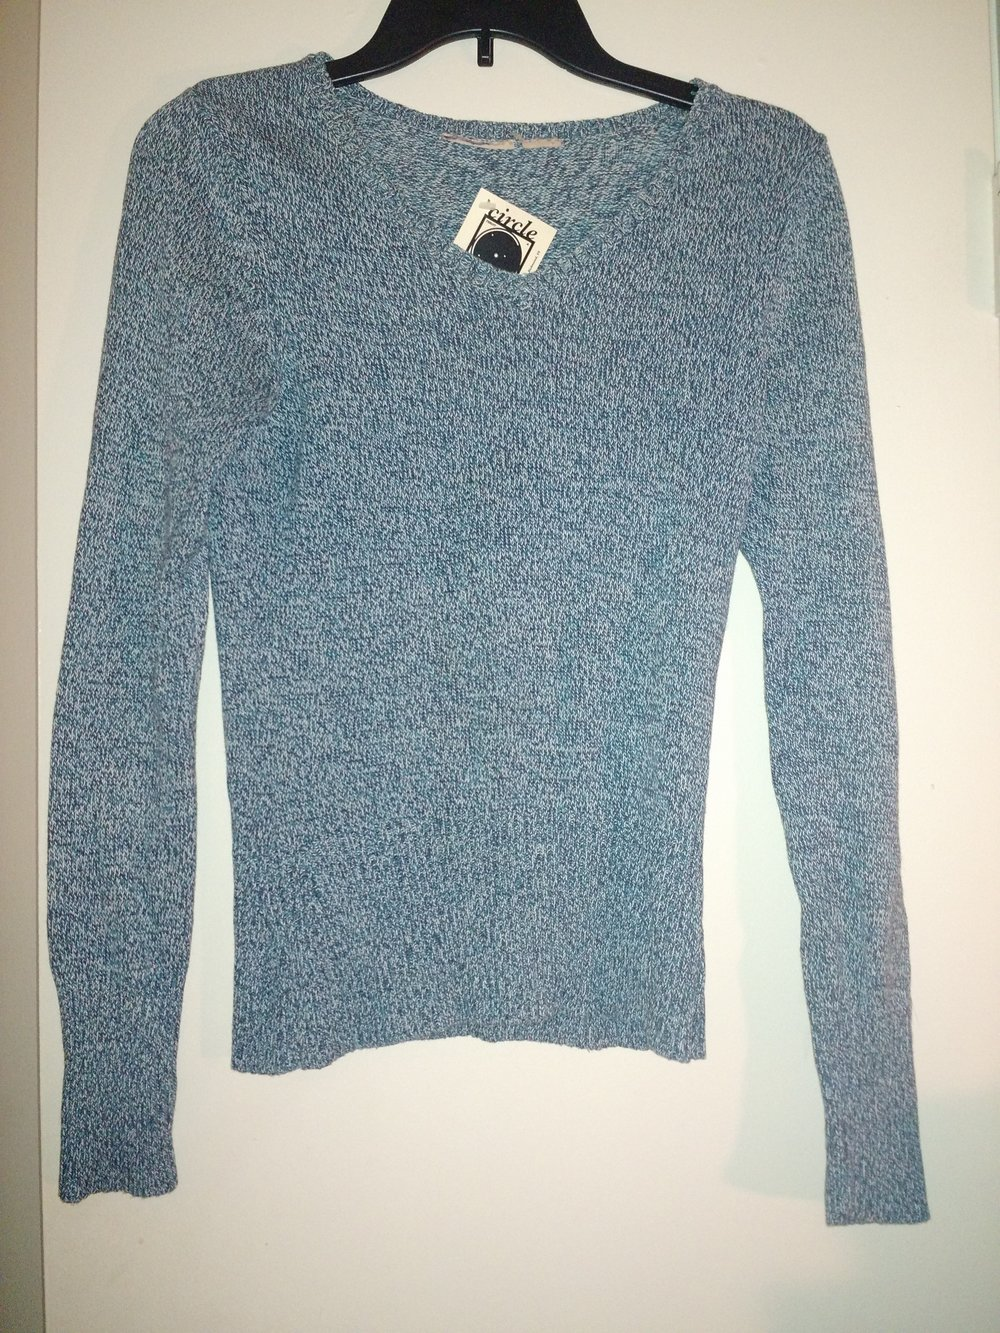 Simple blue sweater for $3